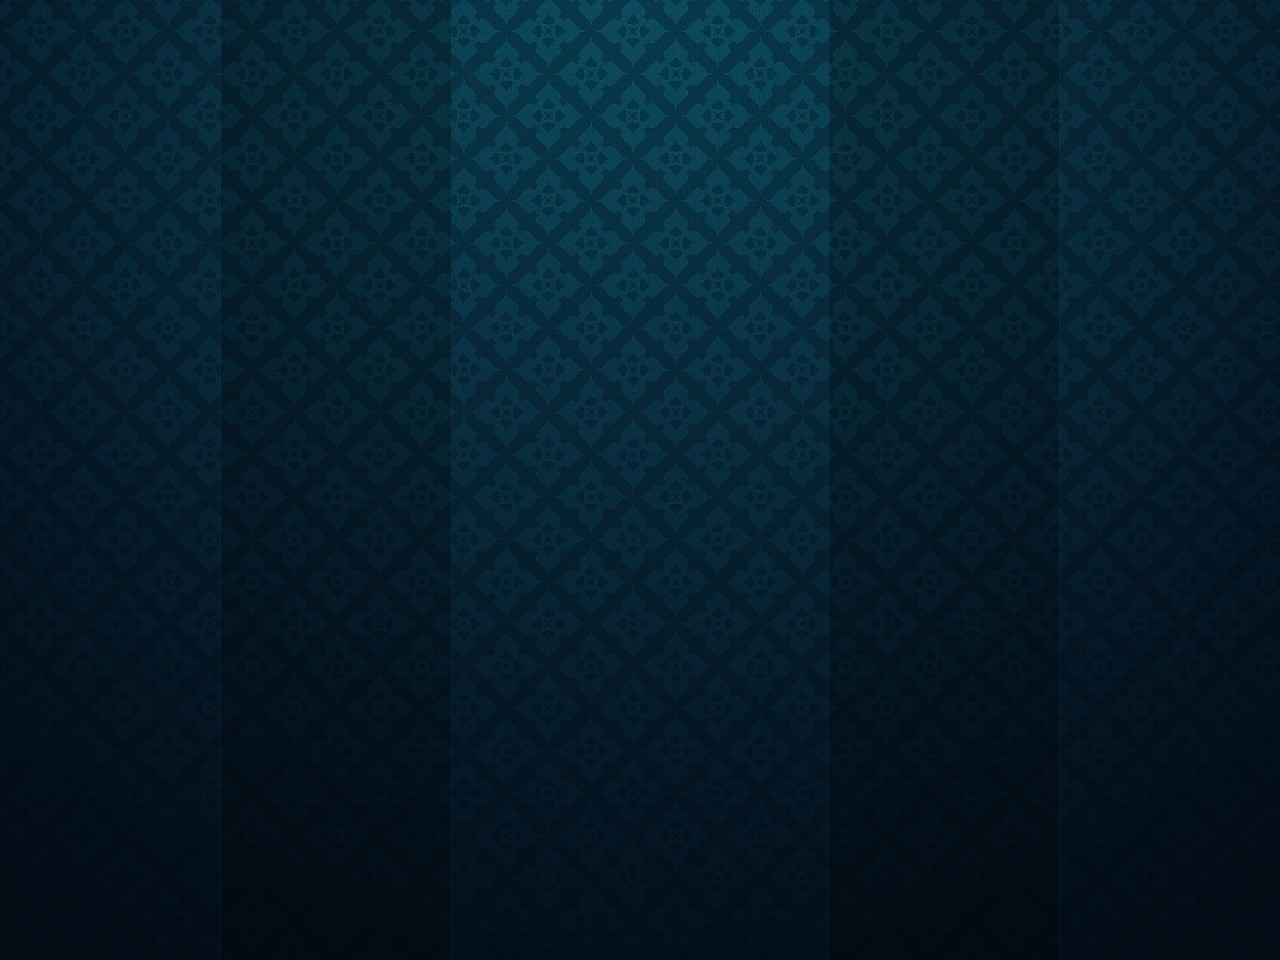 Free Download Diamond Pattern Backgrounds  Wallpapercraft 1280x960